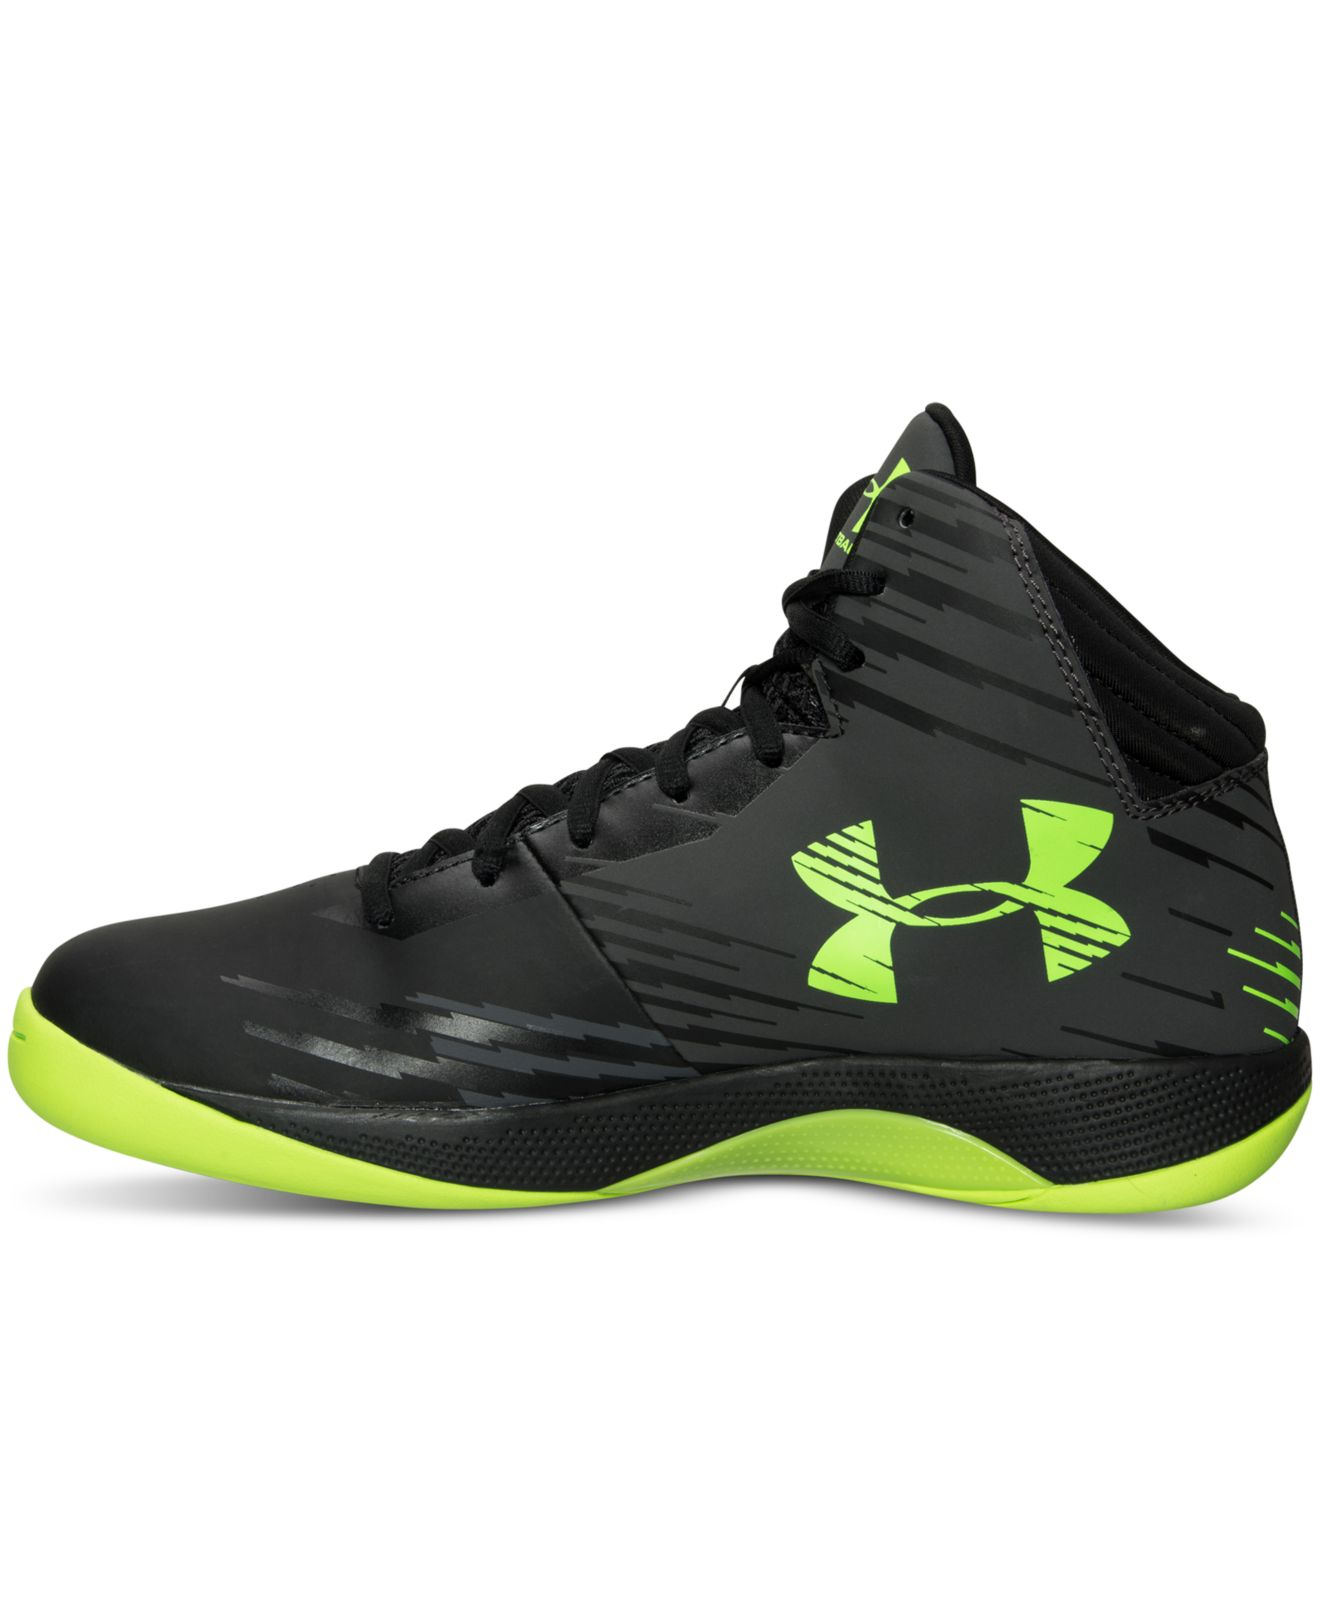 01022f617102 Lyst - Under Armour Men s Jet Basketball Sneakers From Finish Line ...